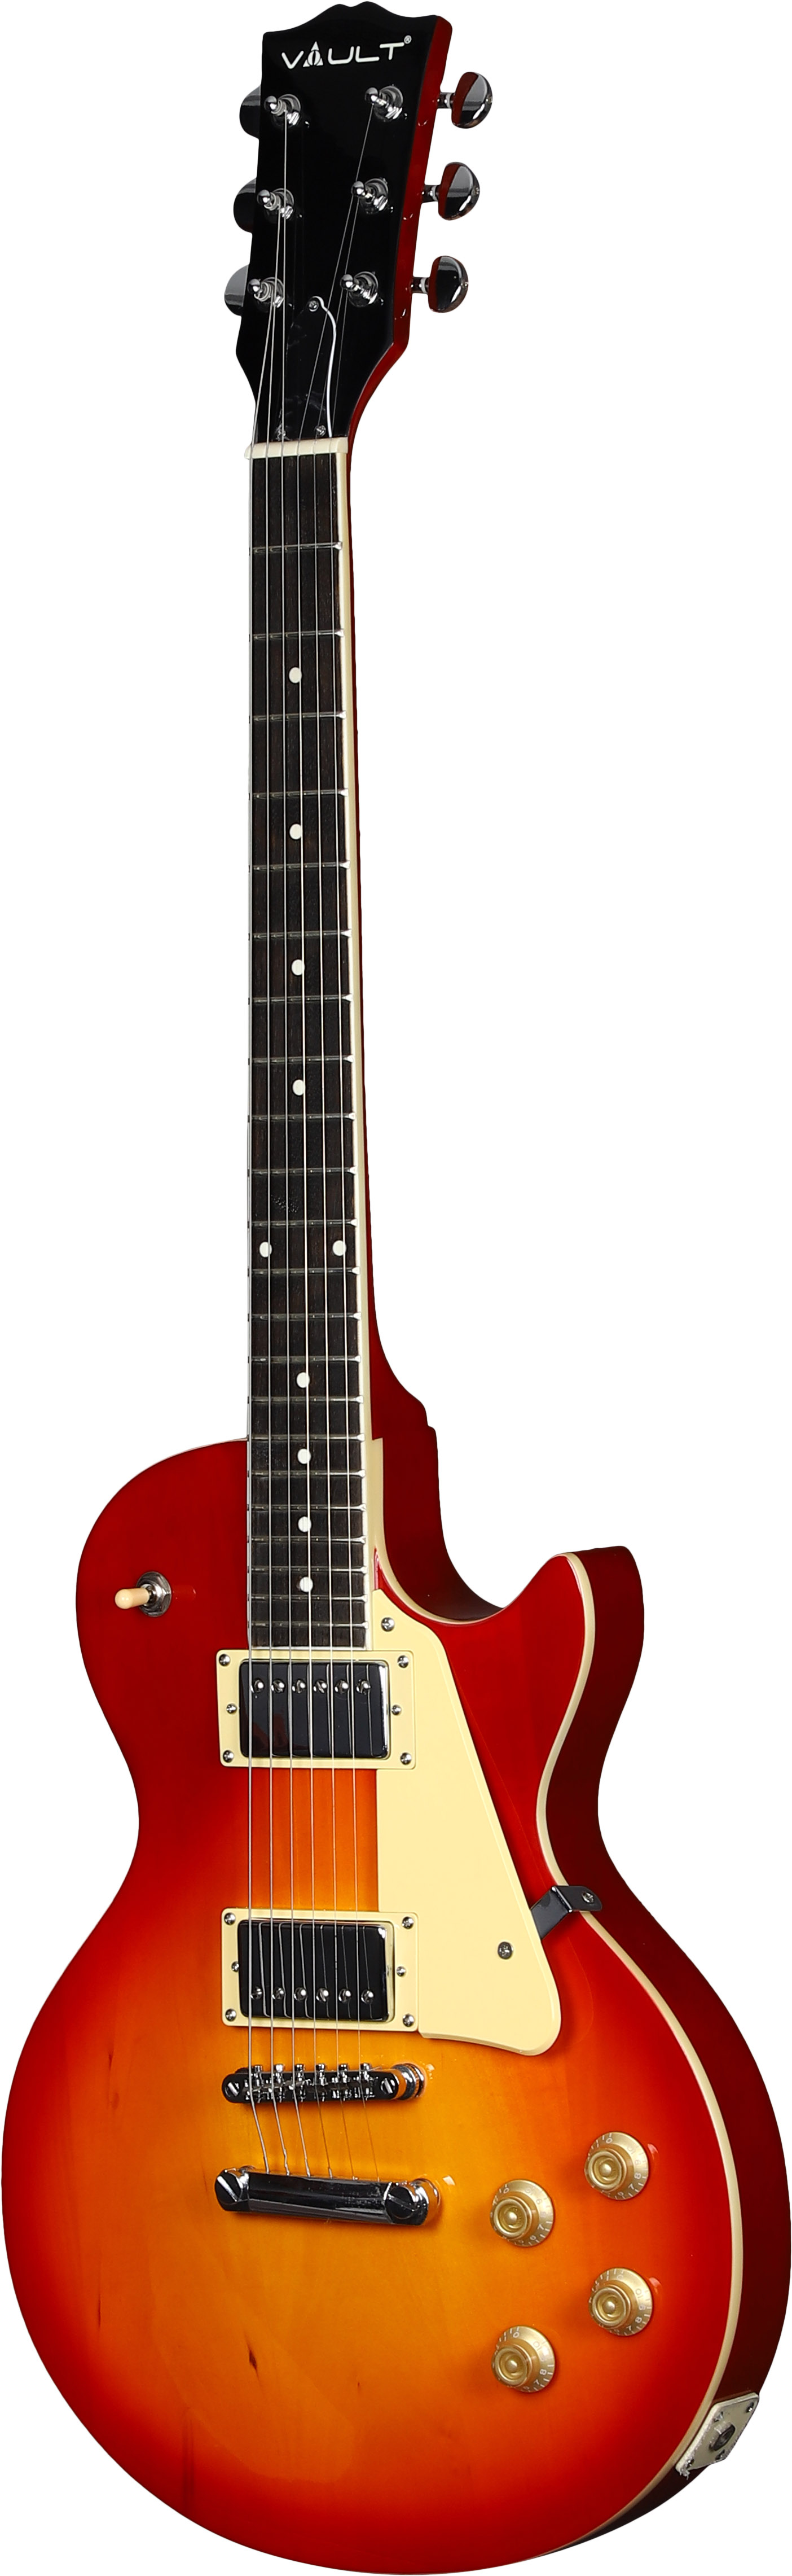 Vault-LP1-Ovangkol-Fretboard-Electric-Guitar-Cherry-Red-Burst-w-Gig-Bag thumbnail 4